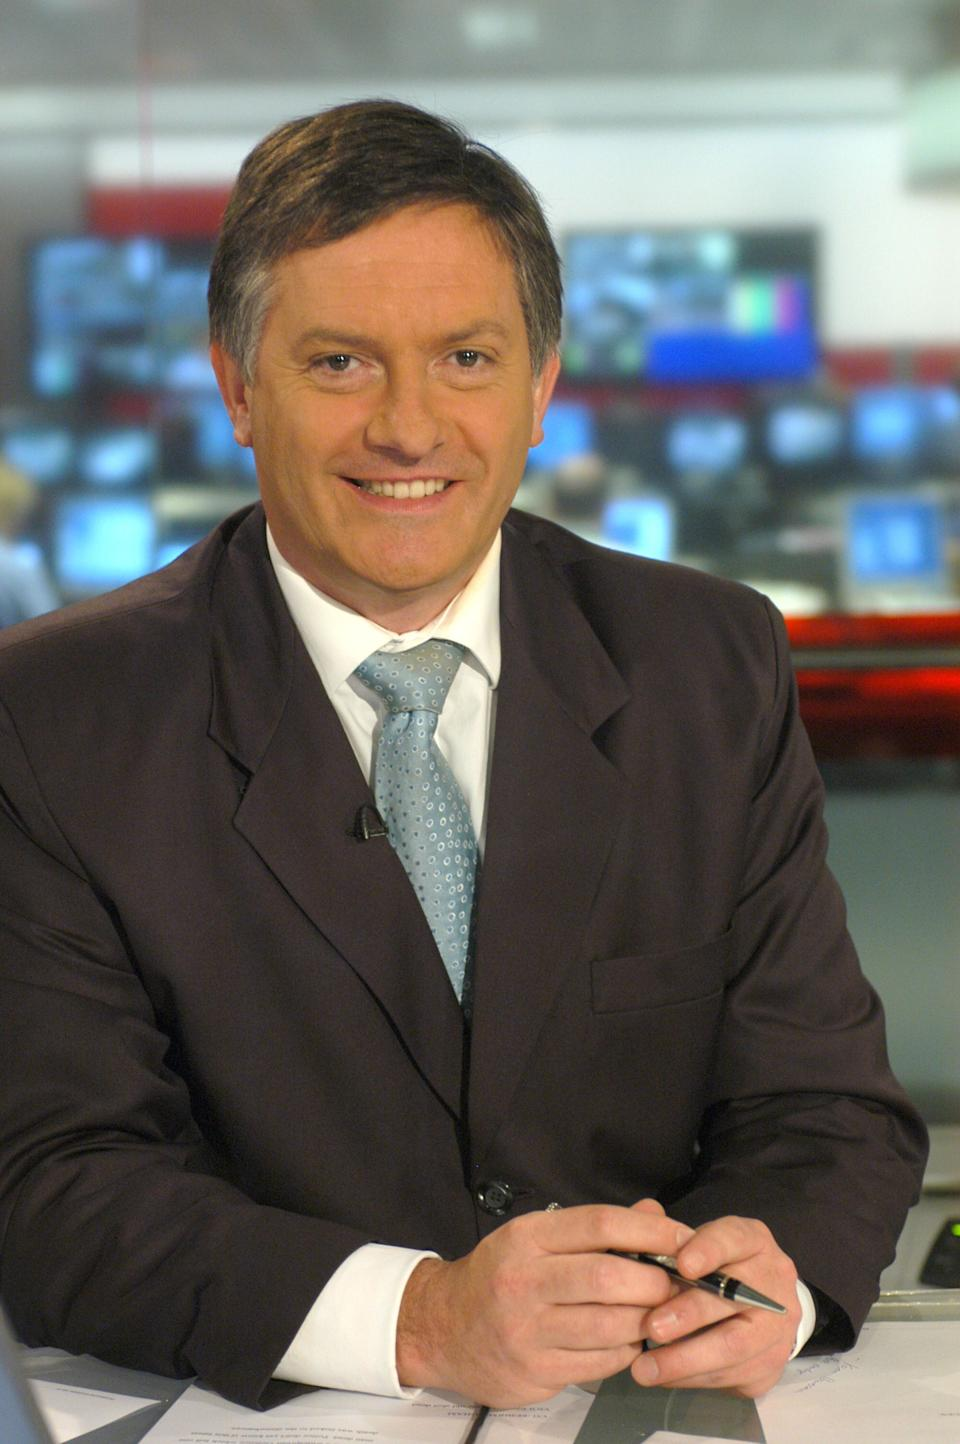 Simon McCoy pictured in 2005 (Photo: Jeff Overs via Getty Images)